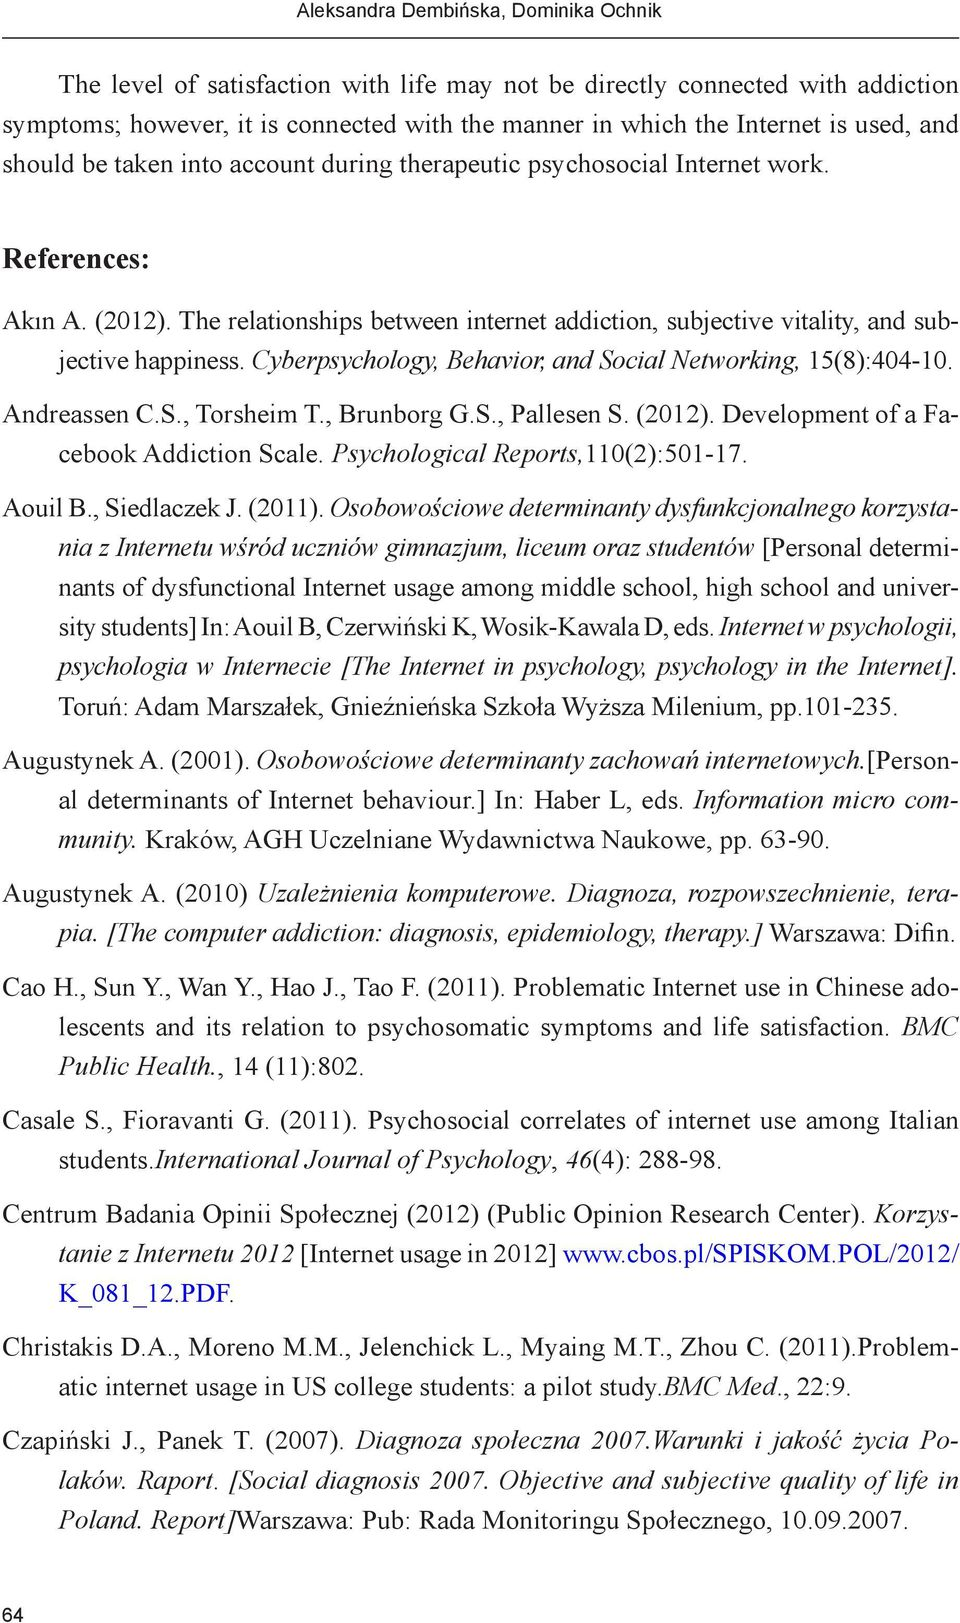 The relationships between internet addiction, subjective vitality, and subjective happiness. Cyberpsychology, Behavior, and Social Networking, 15(8):404-10. Andreassen C.S., Torsheim T., Brunborg G.S., Pallesen S.